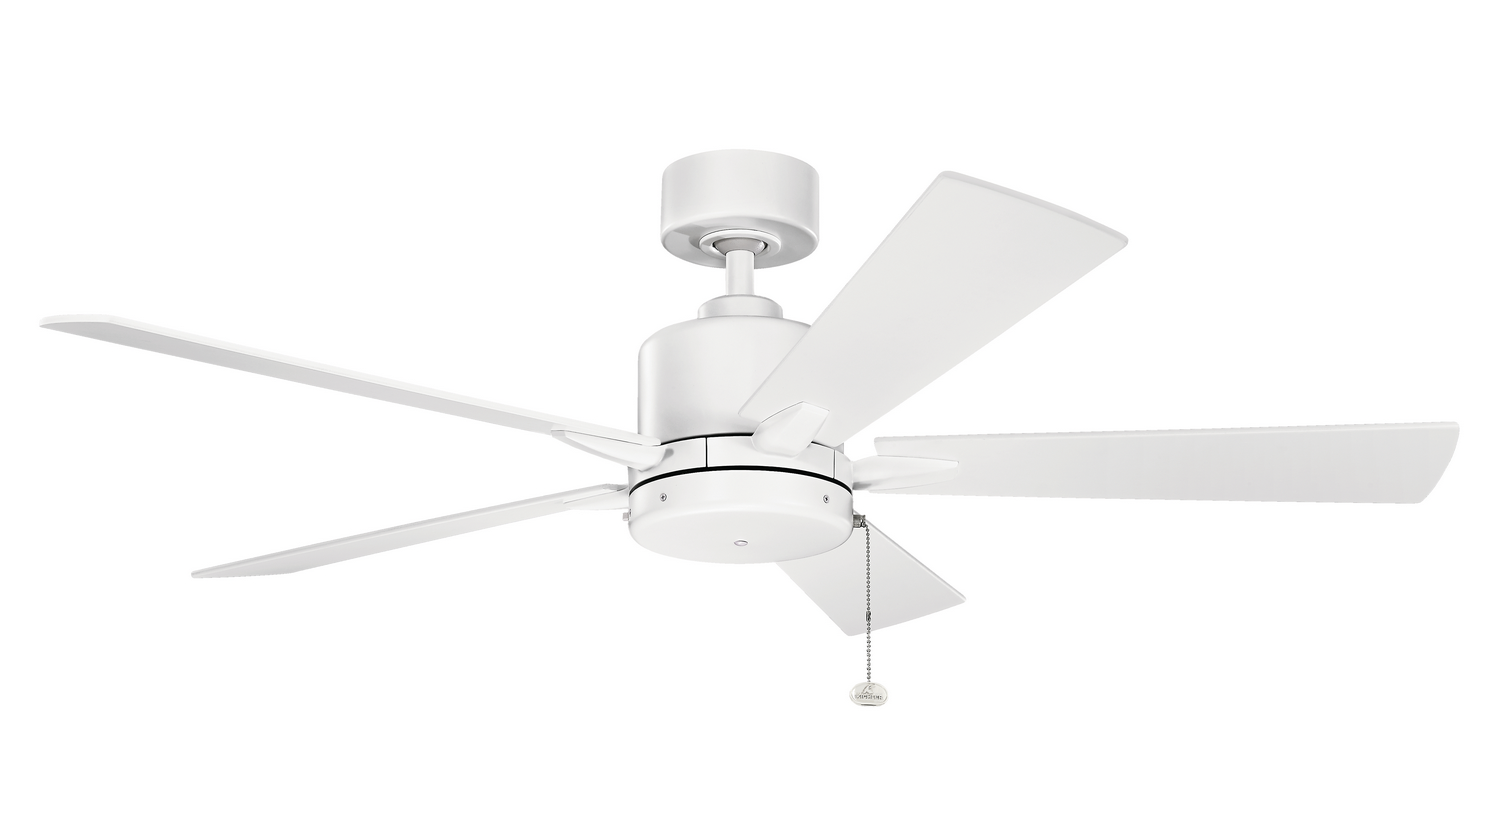 52 inchCeiling Fan from the Bowen collection by Kichler 330242MWH